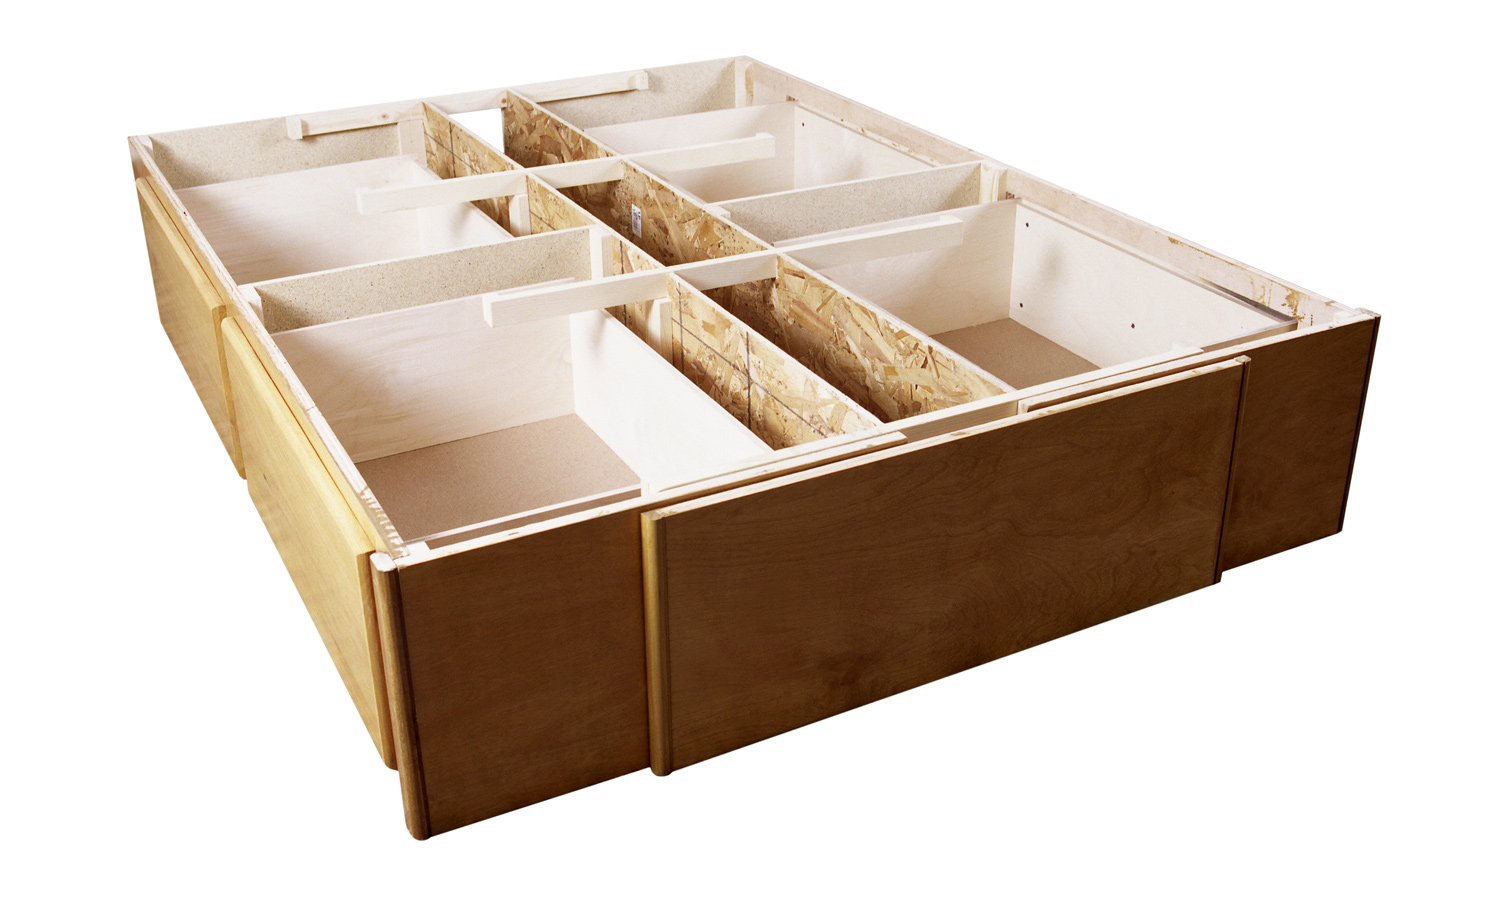 Waterbed Storage Base- 4 drawer underbed storage solution